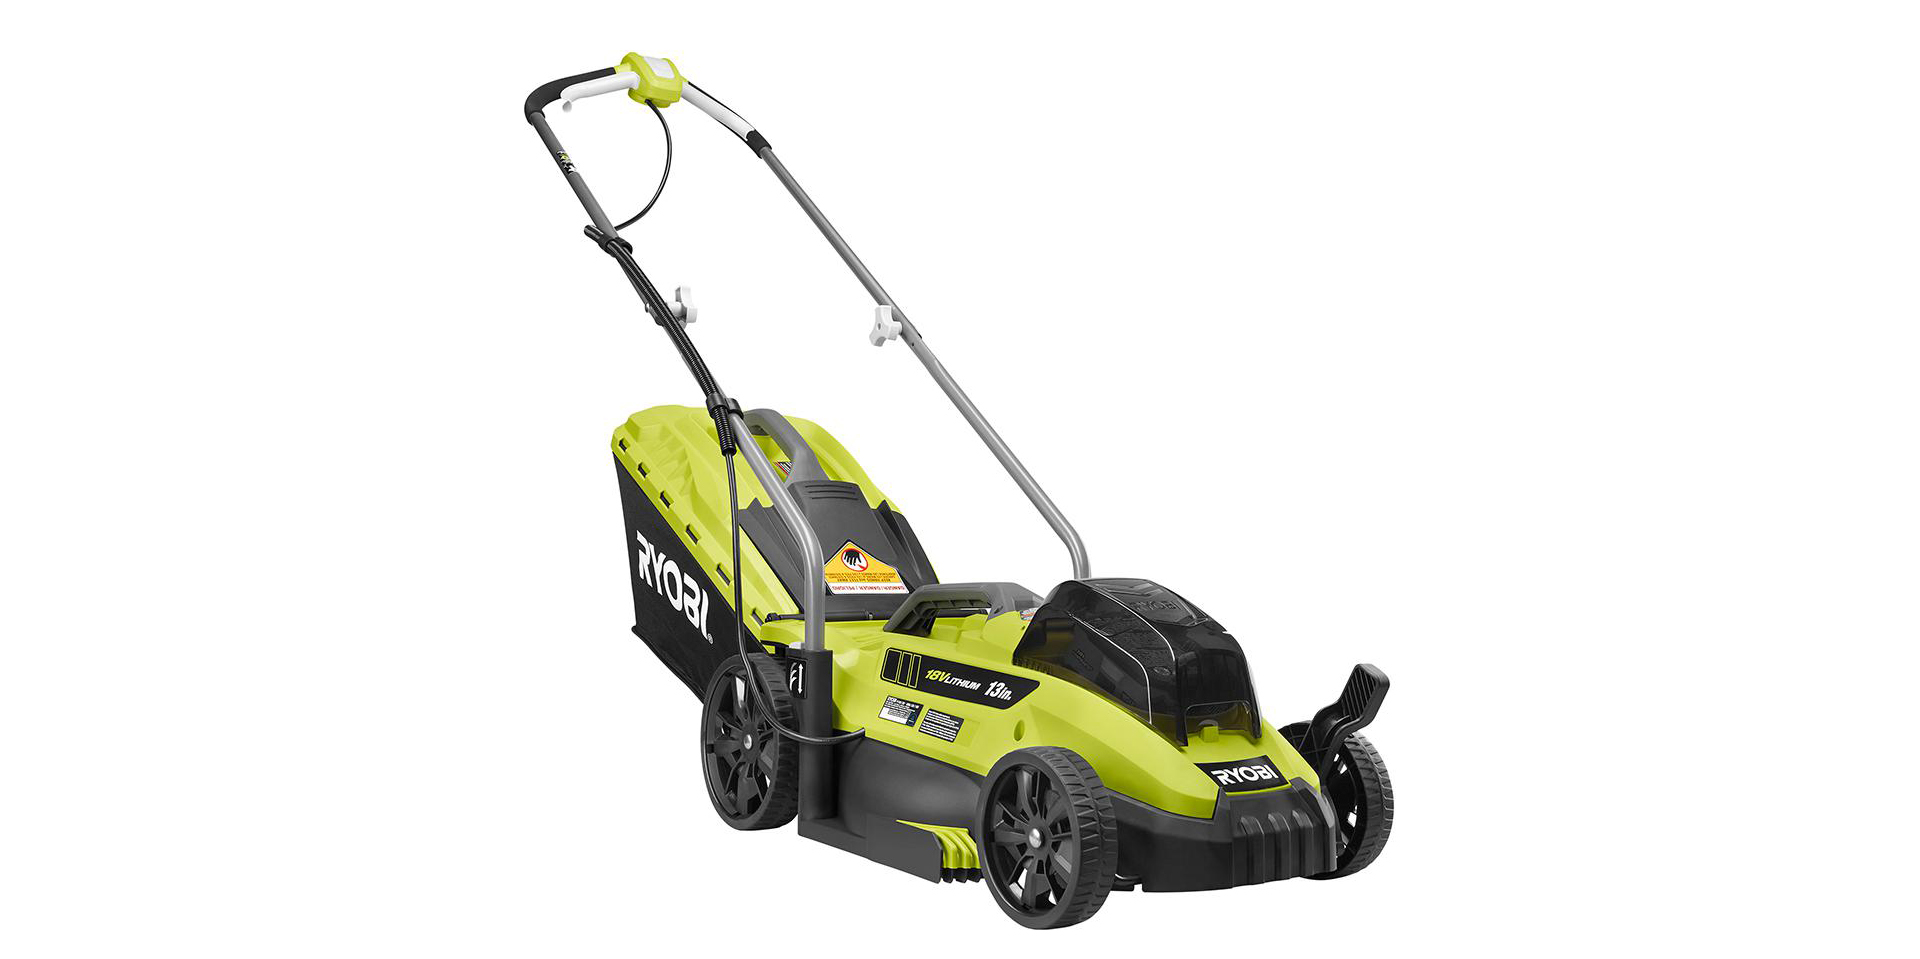 Electric Lawn Mower Sale Ryobi Electric Lawn Mowers And More Highlight Today S Deals Electrek